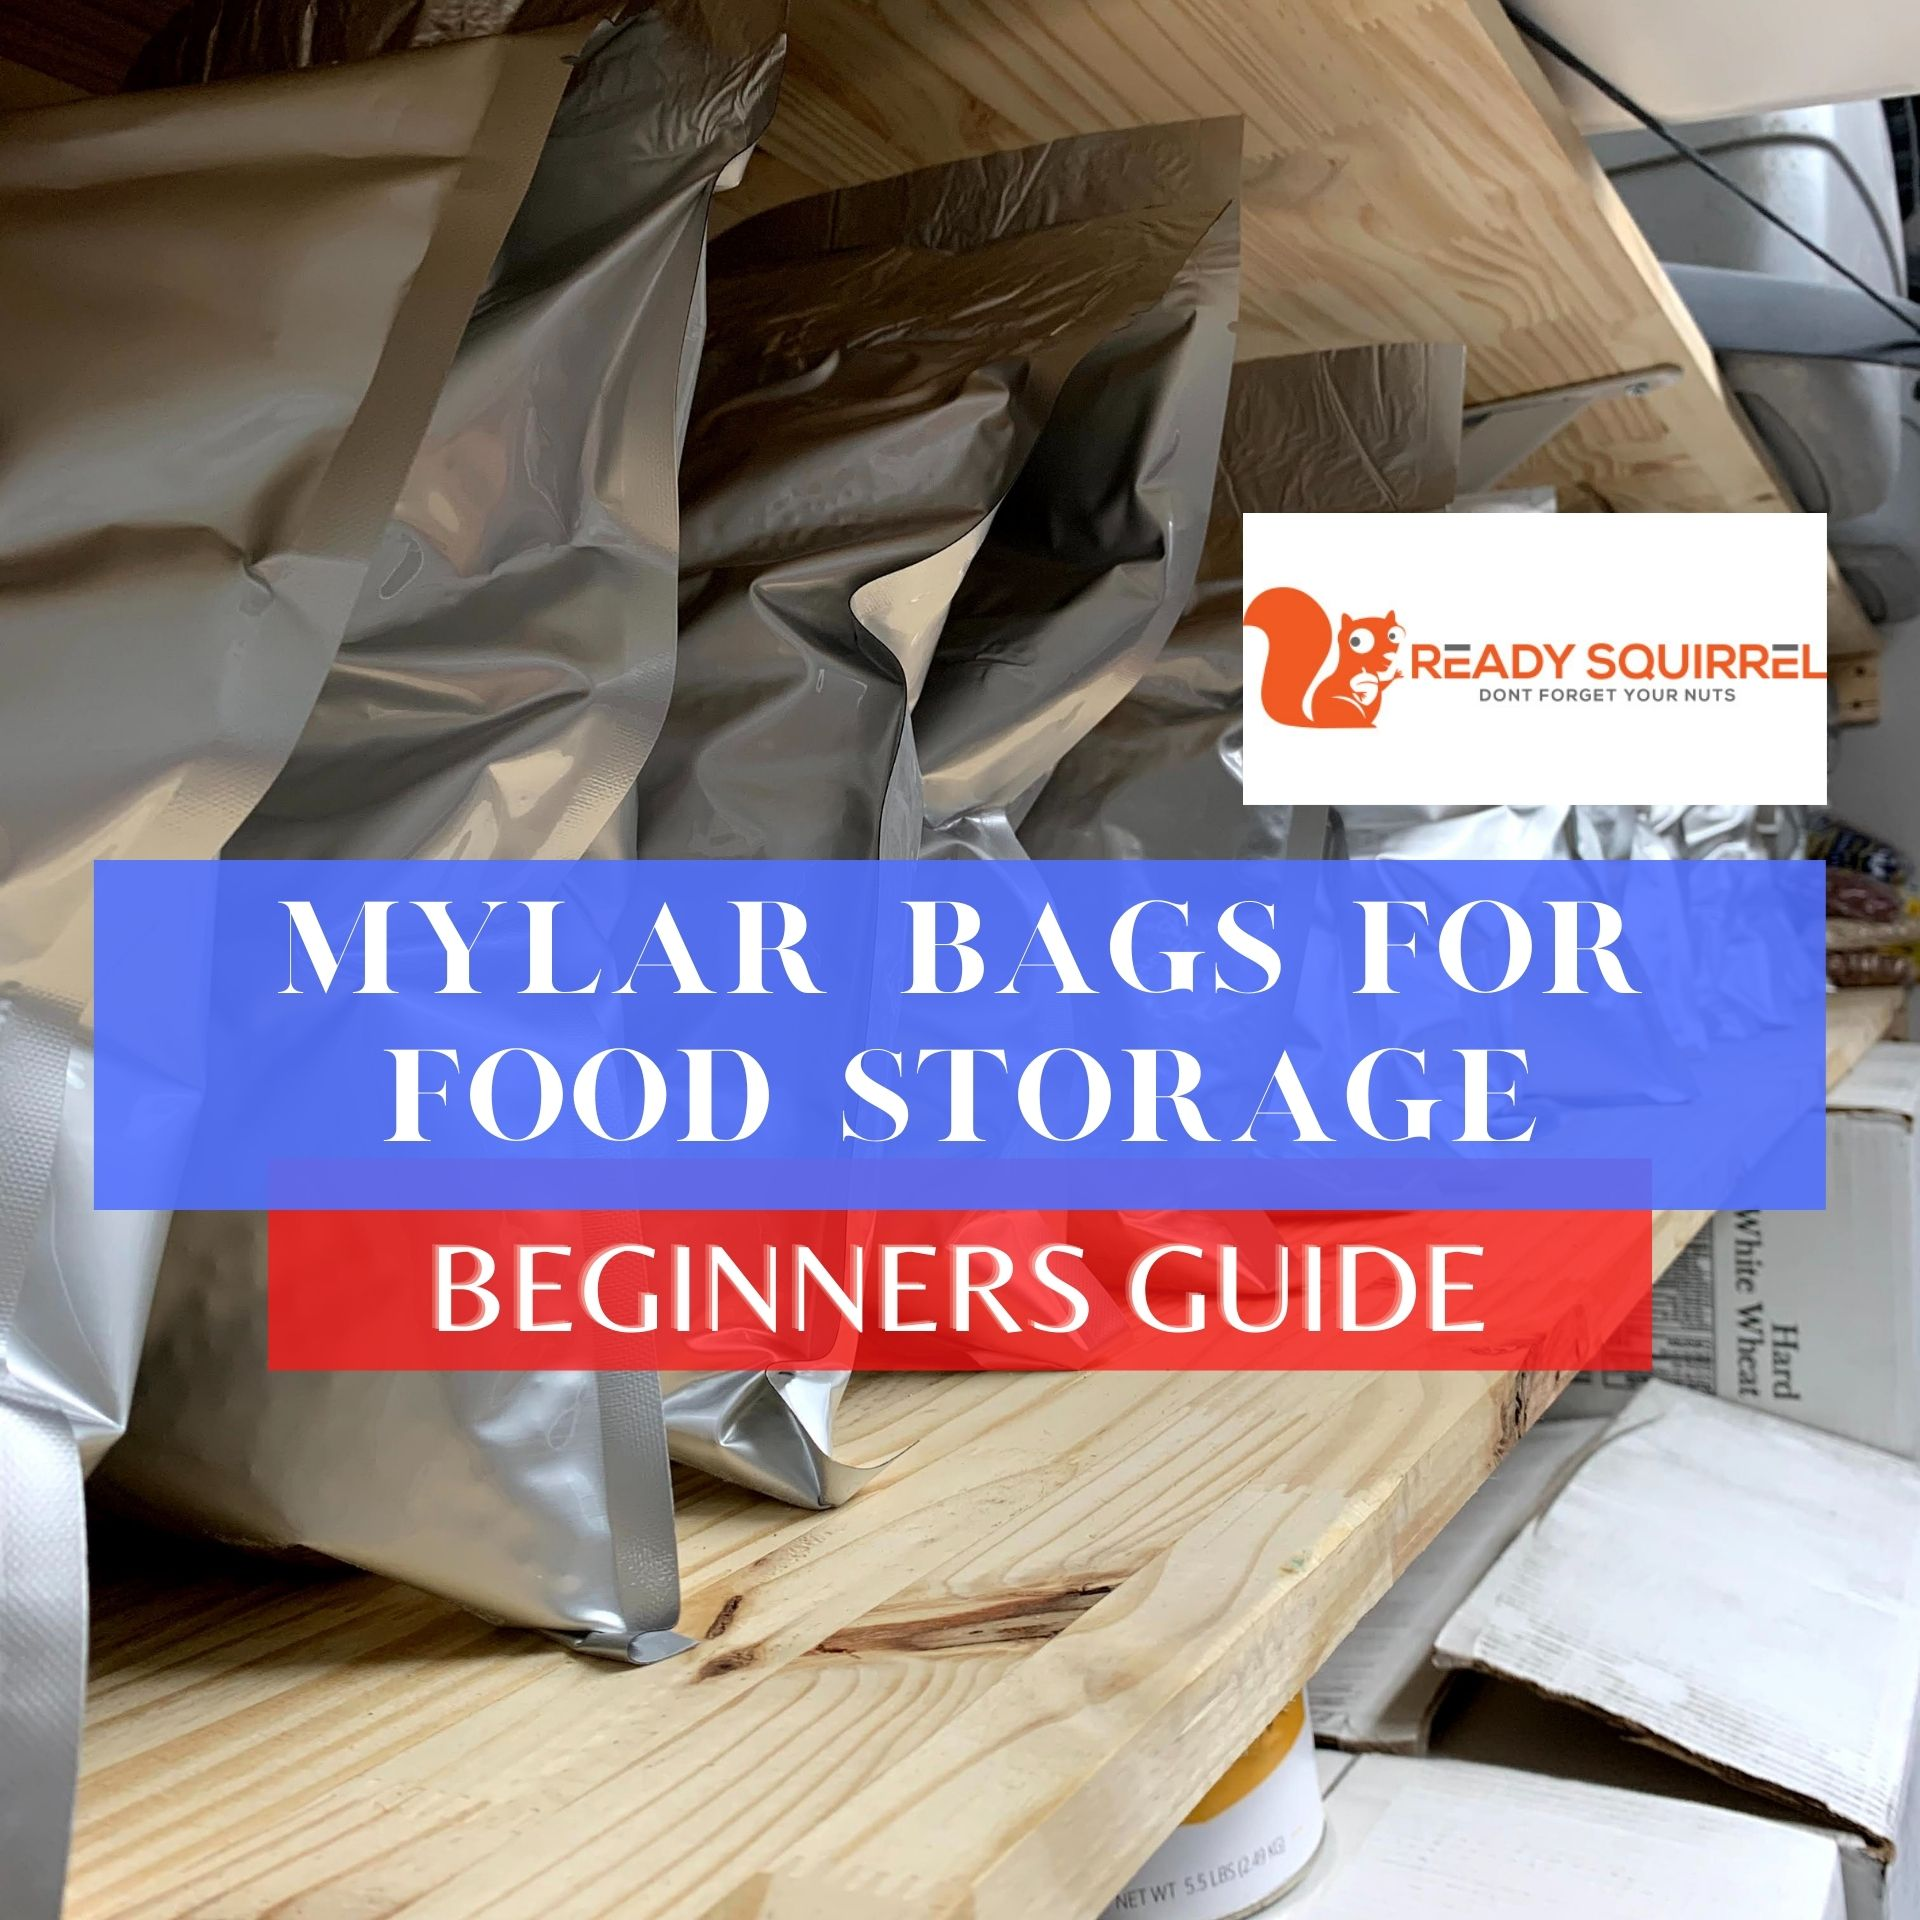 Mylar Bags For Food Storage: Beginners Guide